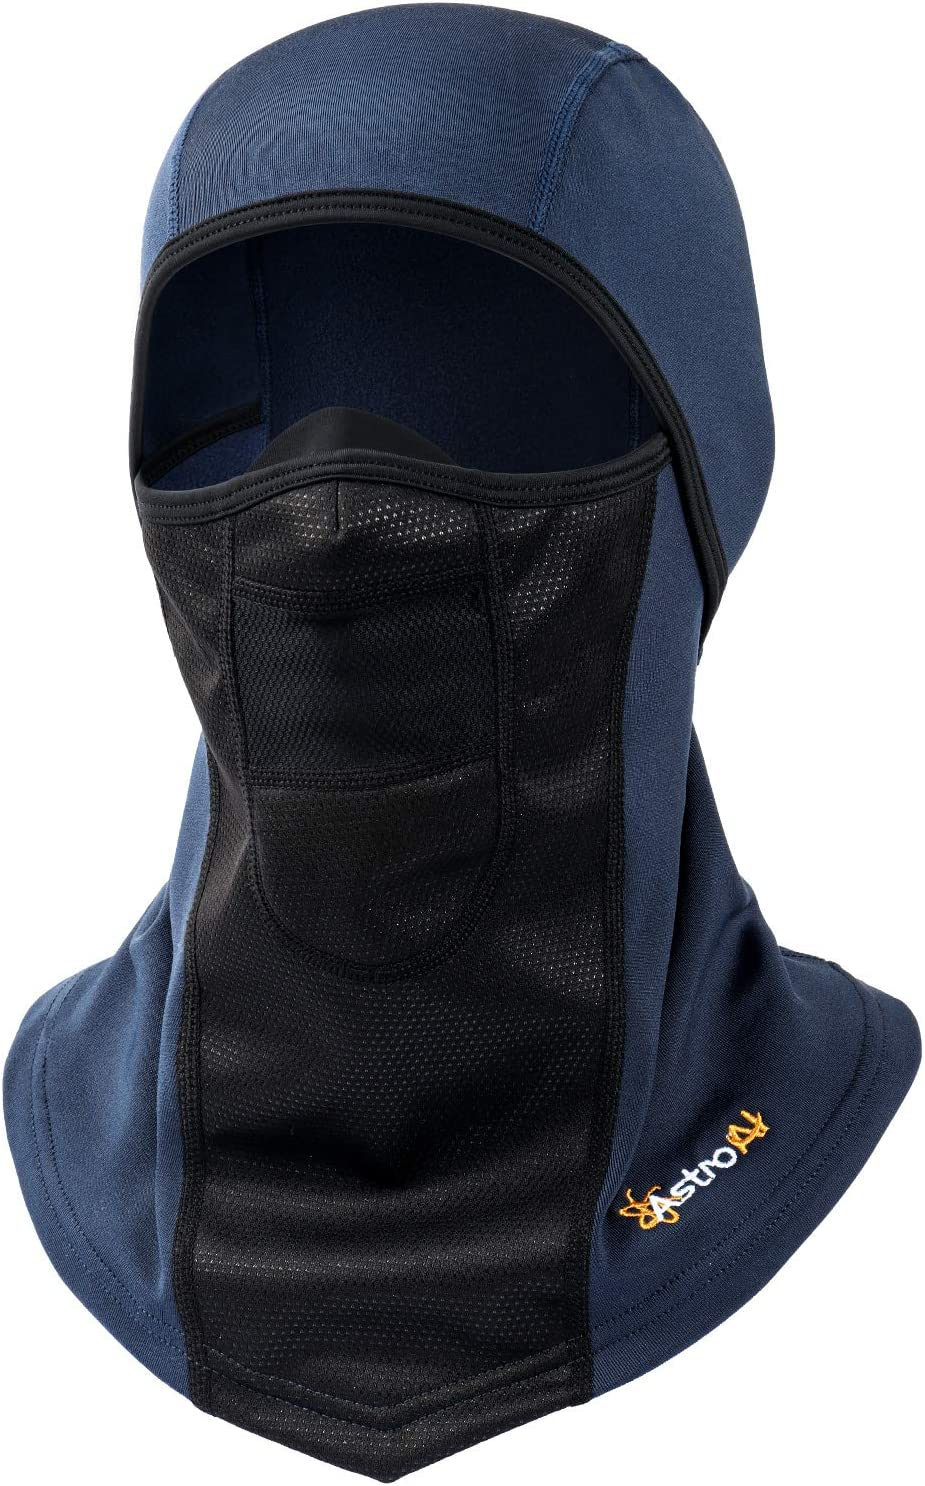 AstroAI Ski Mask Windproof Balaclava for Cold Weather, Winter Face Mask Breathable Stretchable for Skiing, Snowboarding & Motorcycle Riding, Full Protection Mask for Men/Women Navy Blue